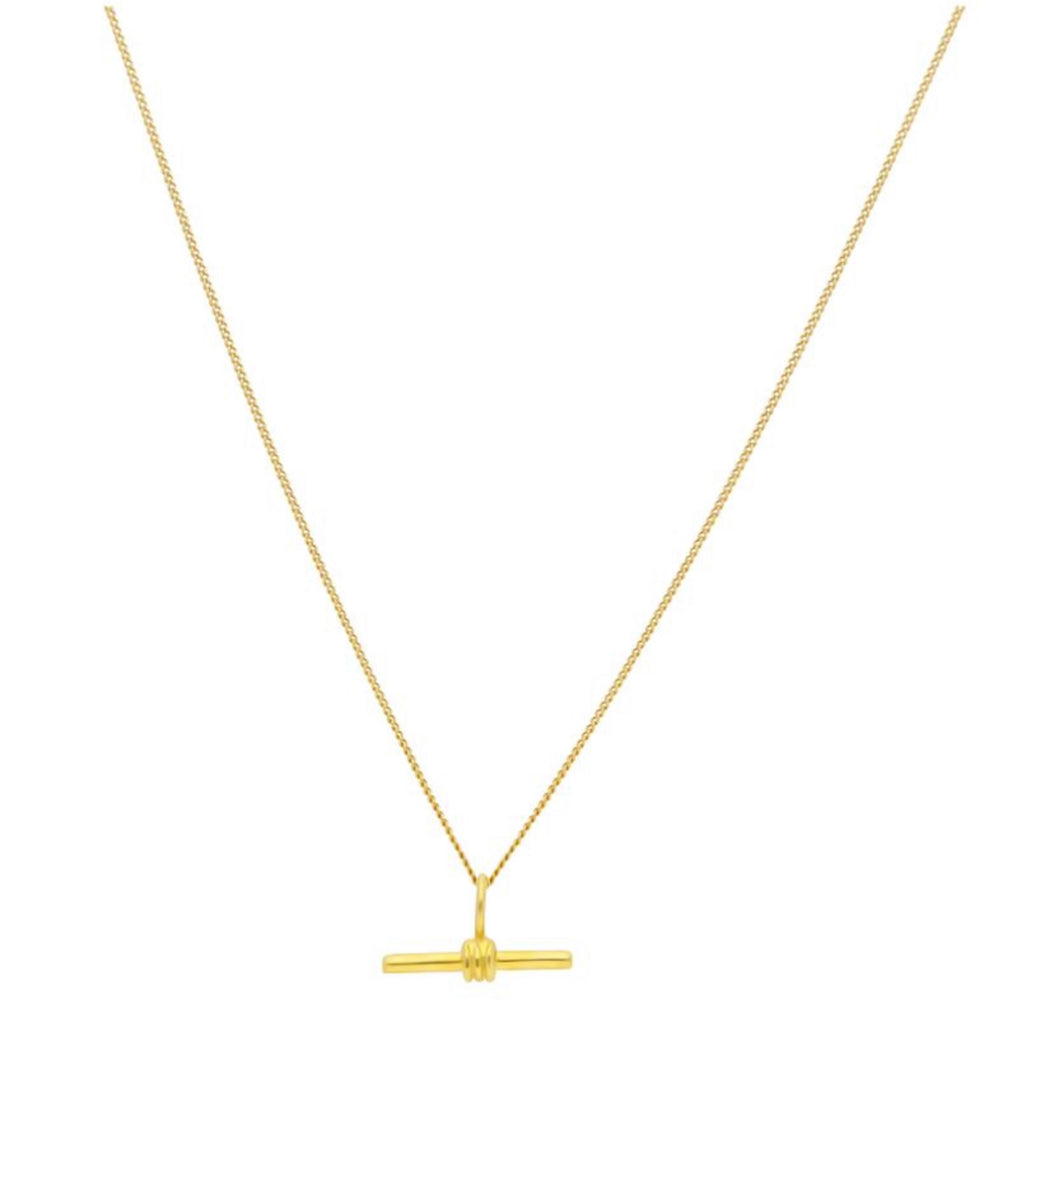 Small gold T bar necklace